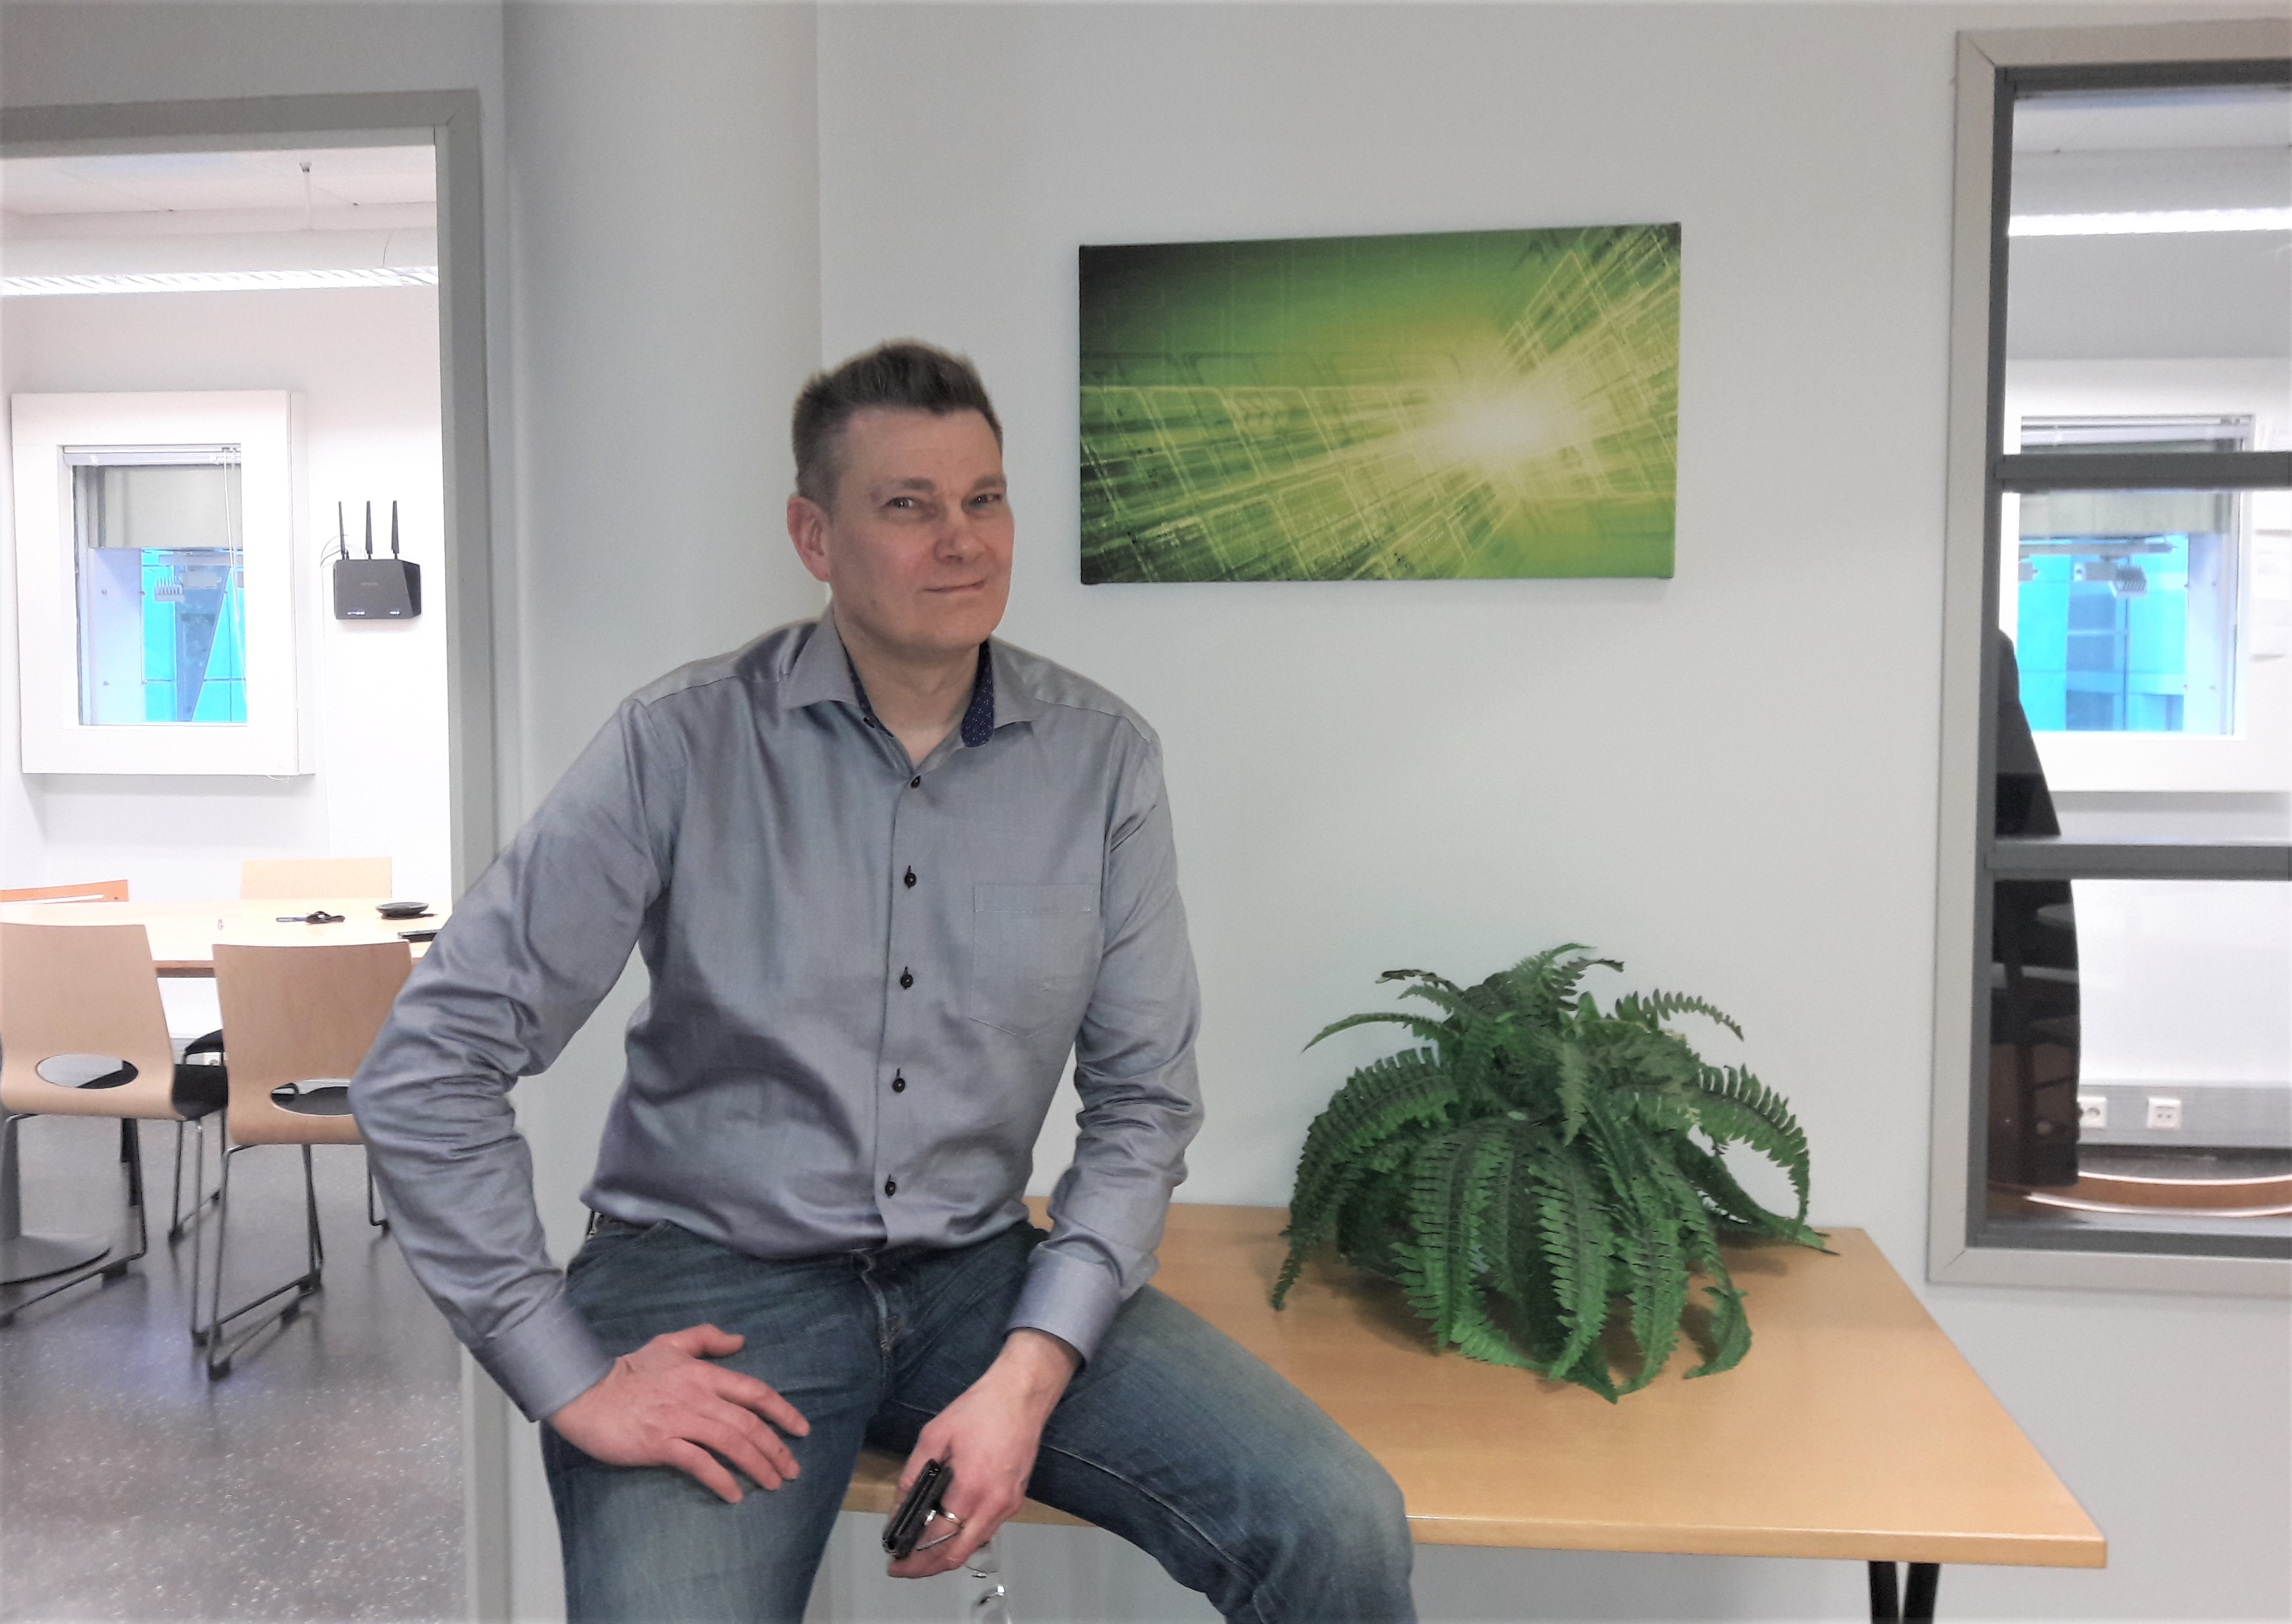 Project Manager of Elinar, Mikko Arohonka sitting in Elinar's office